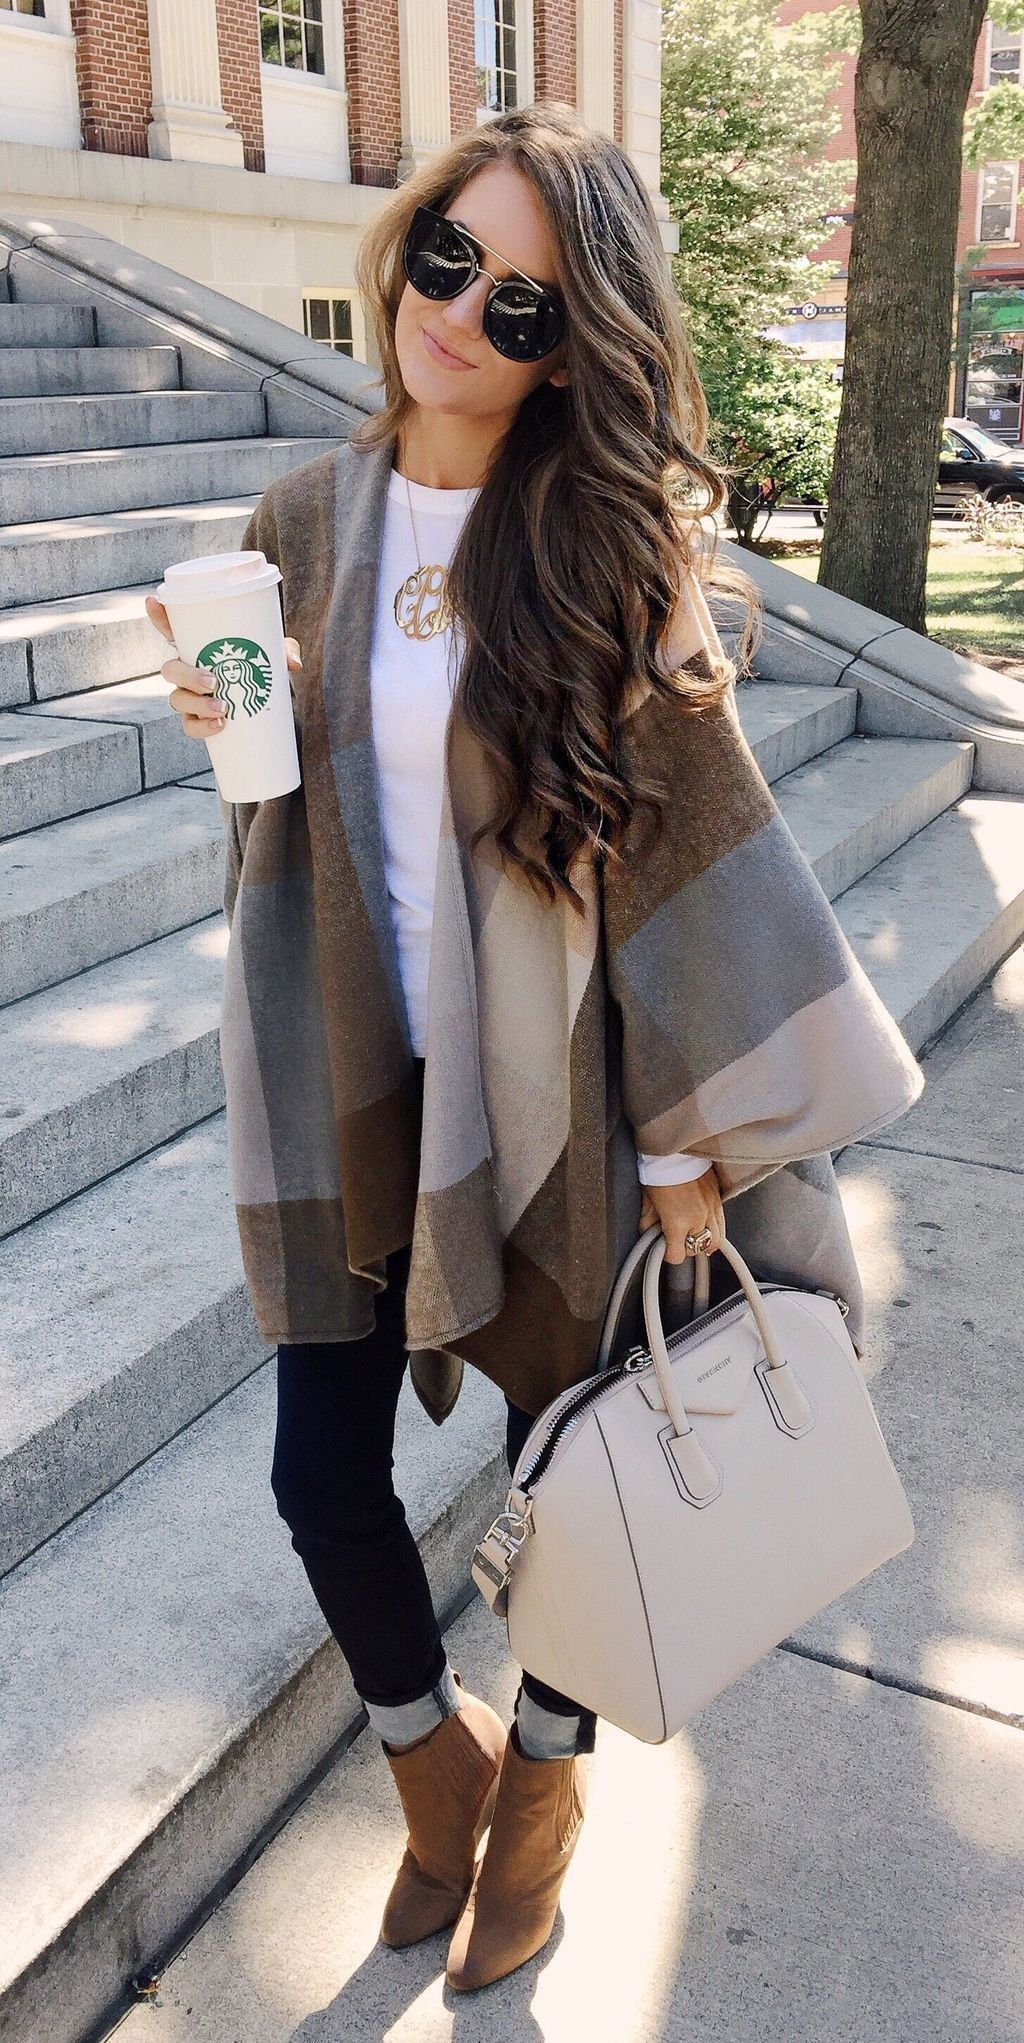 d37cad8544 Best Women Casual Outfit to Wear Fall and Winter 2018 28 - Outfital.com